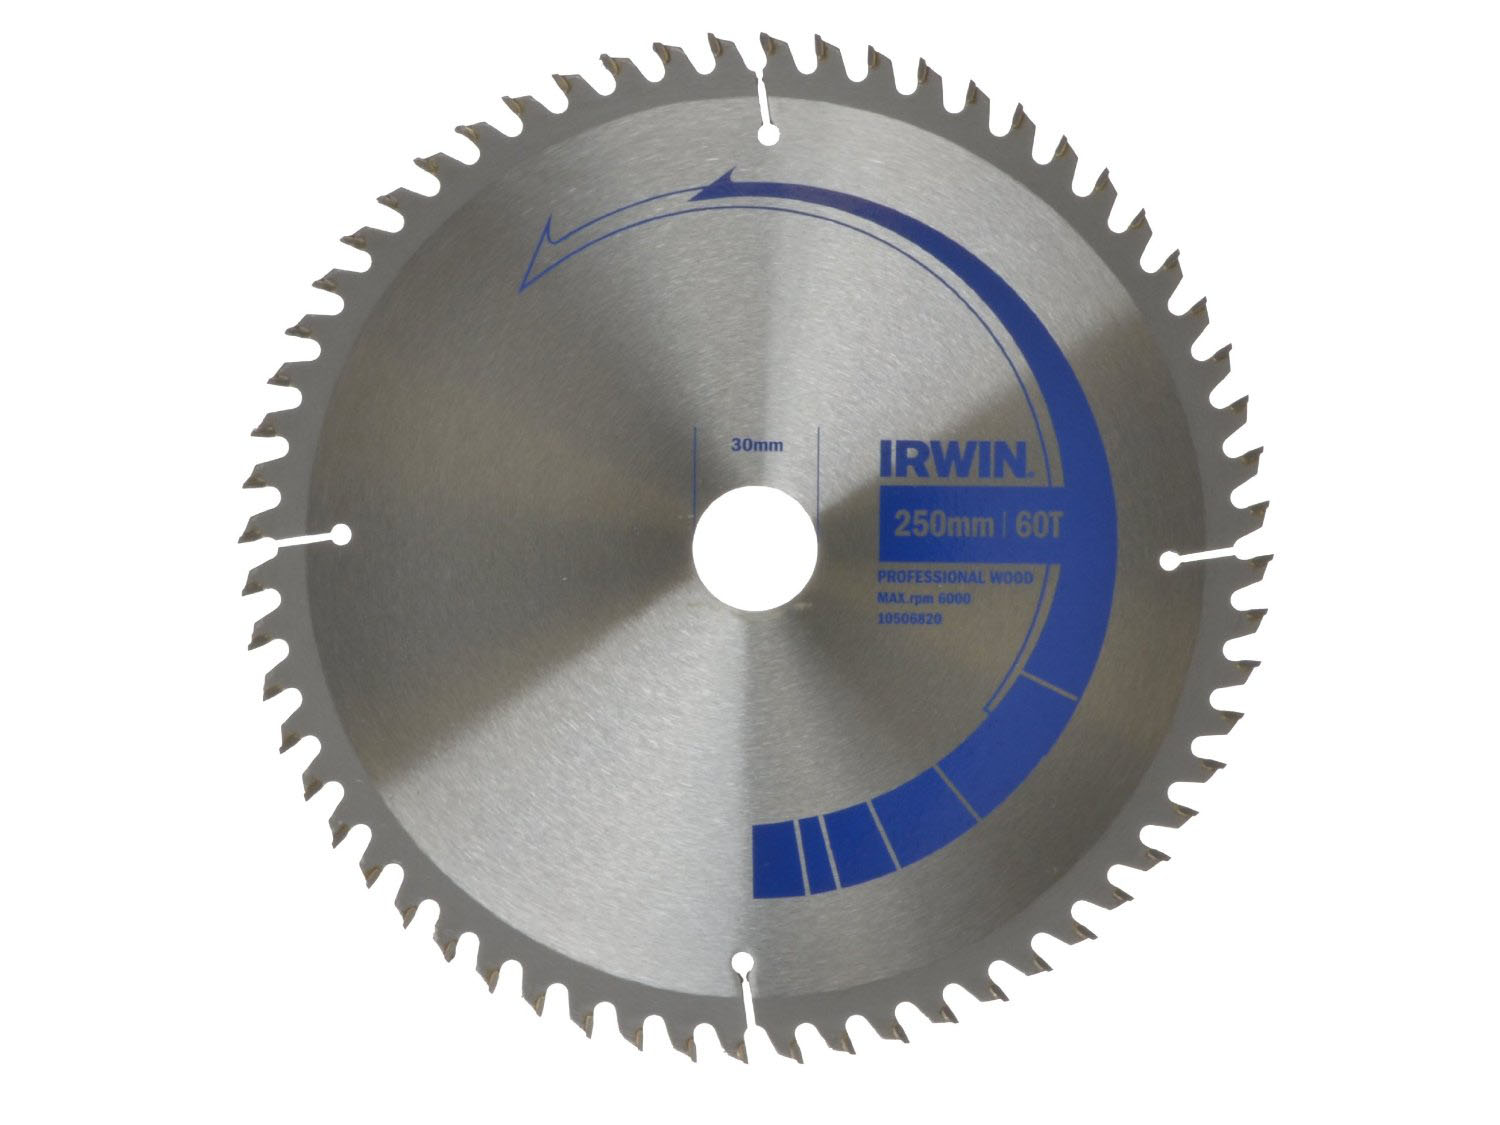 IRWIN 1907700 - Professional Wood Circular Saw Blade; 250x60Tx30mm